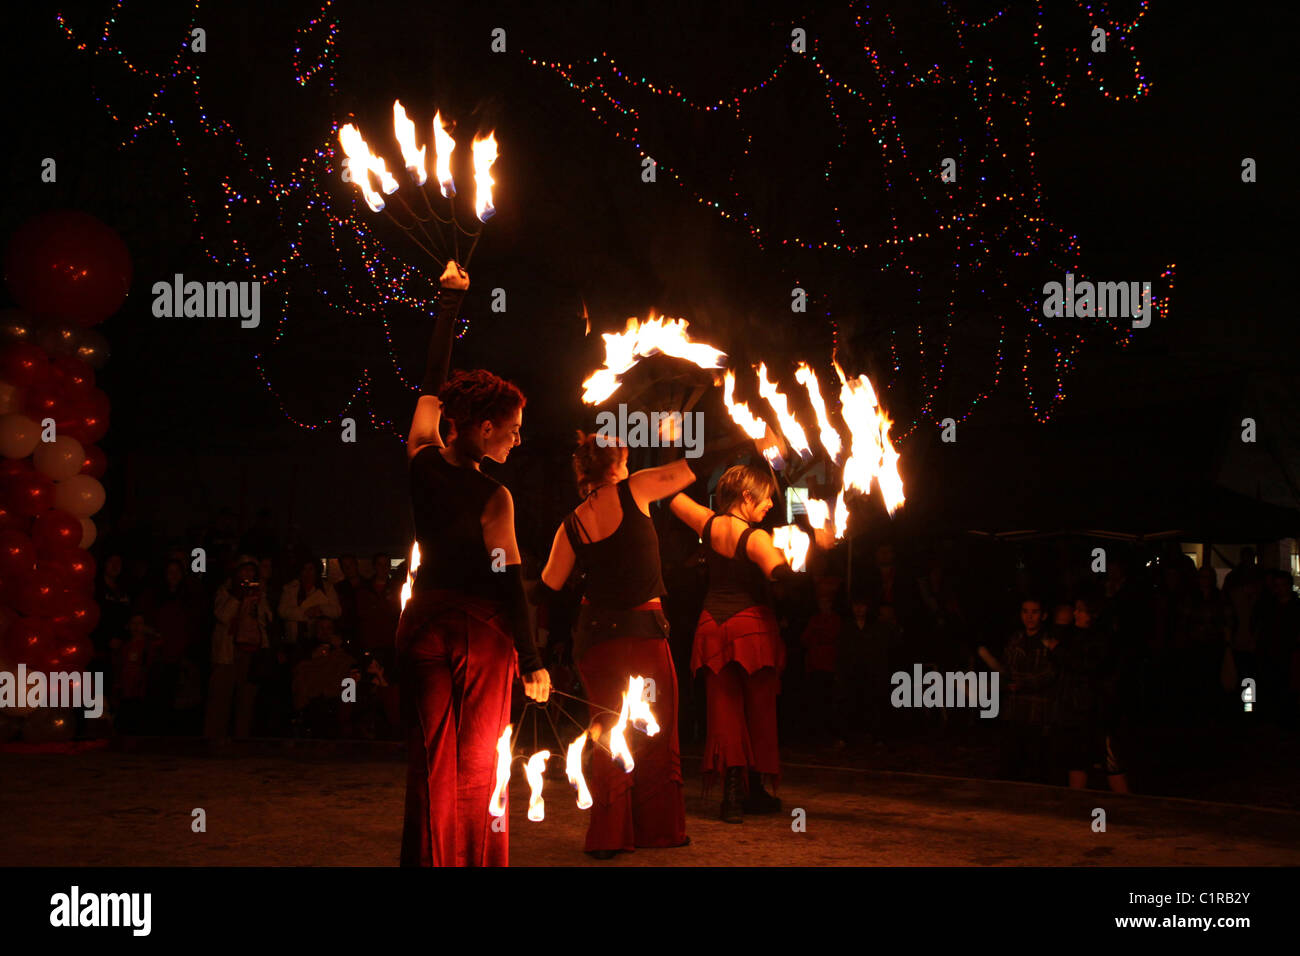 Graceful and artistic female firedancing troupe perform at an outdoor night time celebration - Stock Image